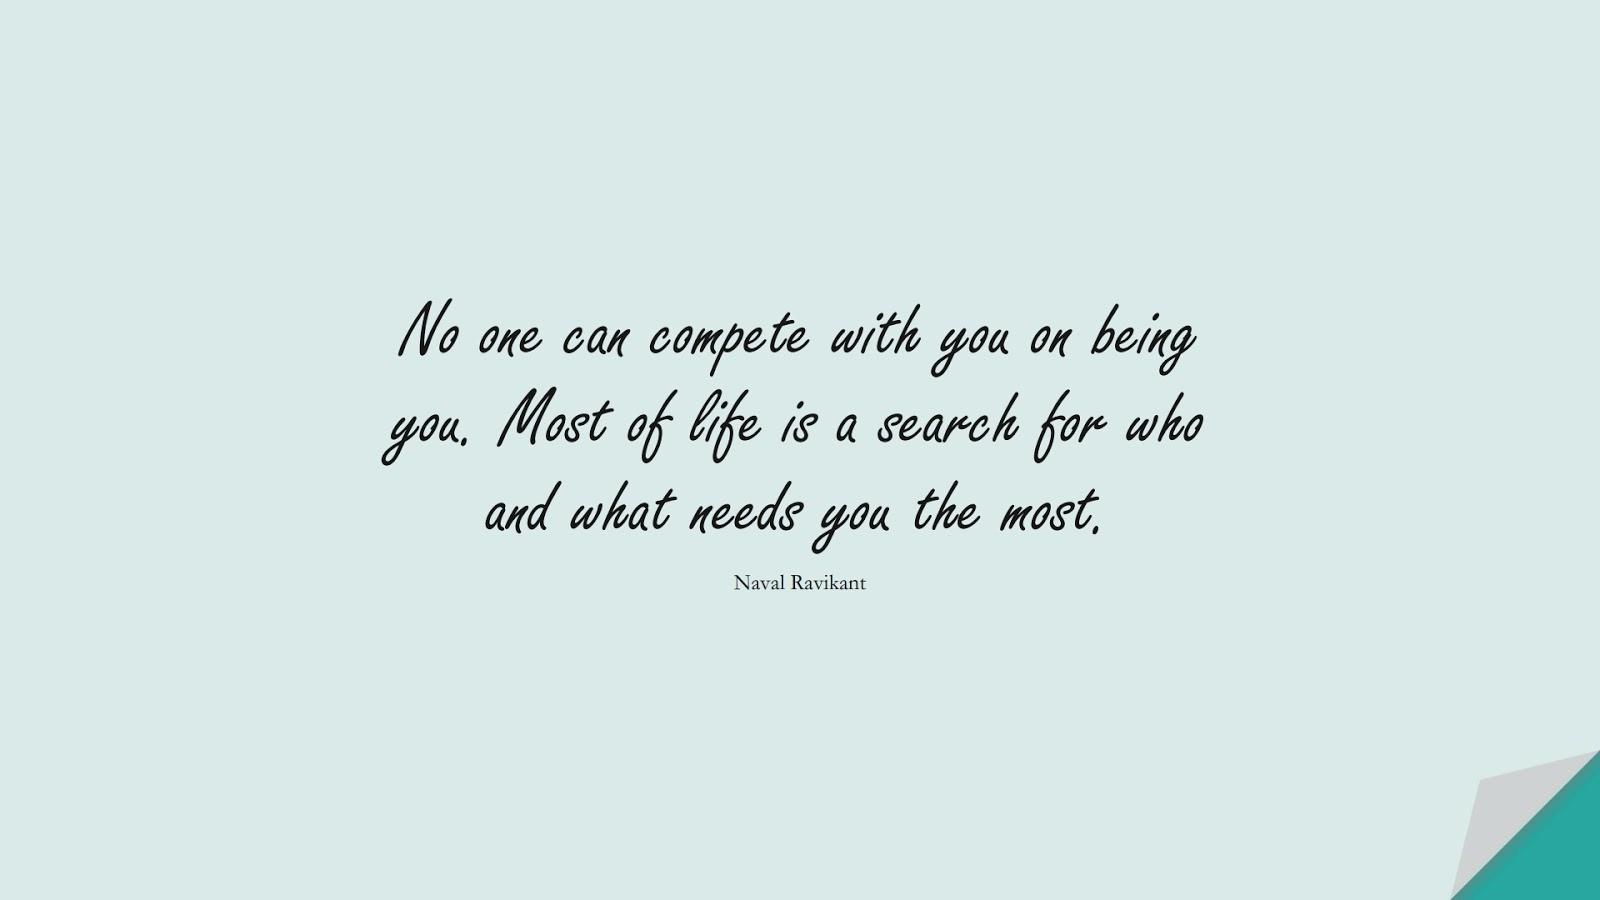 No one can compete with you on being you. Most of life is a search for who and what needs you the most. (Naval Ravikant);  #LifeQuotes